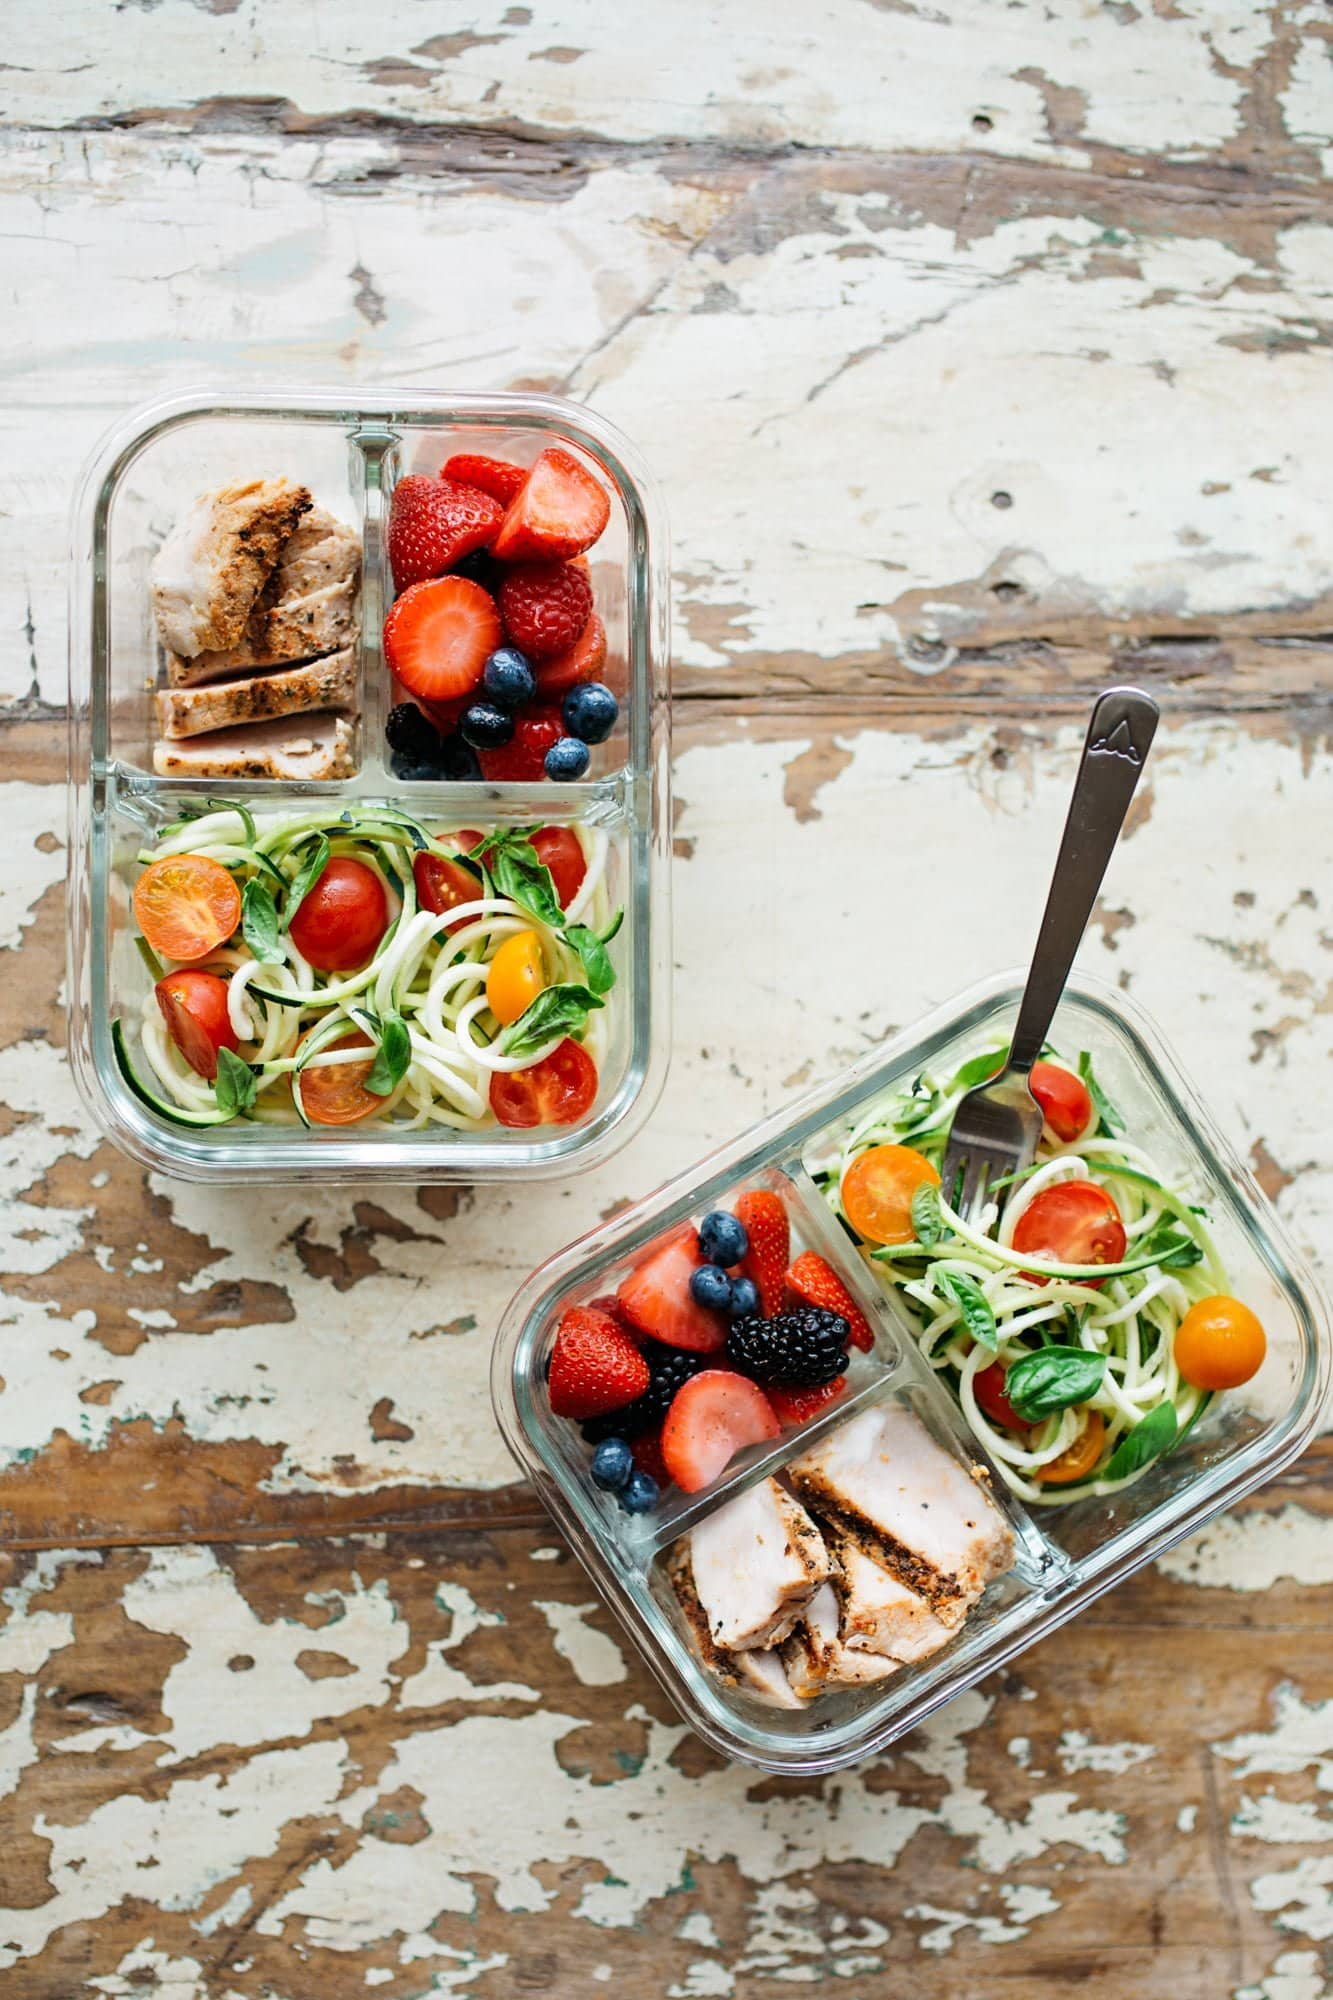 Two divided glass containers filled with a meal prep lunch - chicken, berries, and vegetables.